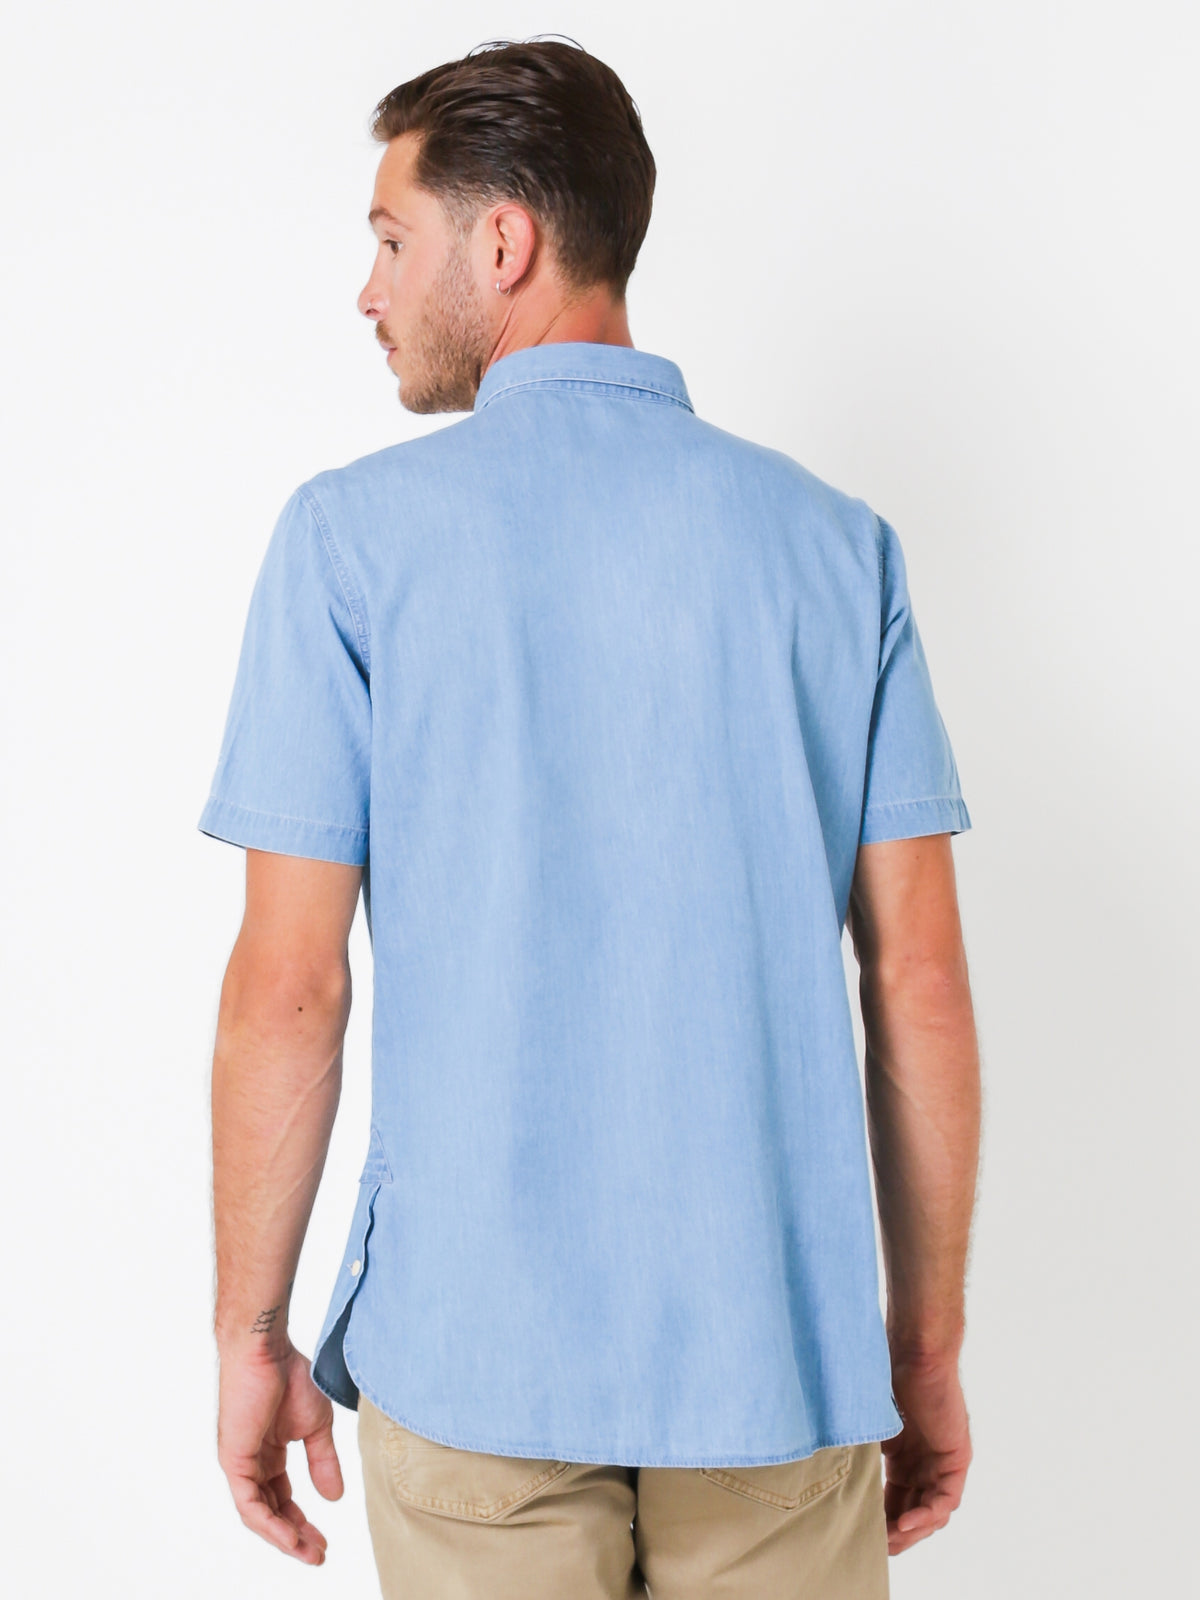 Aires Short Sleeve Shirt in Washed Chambray